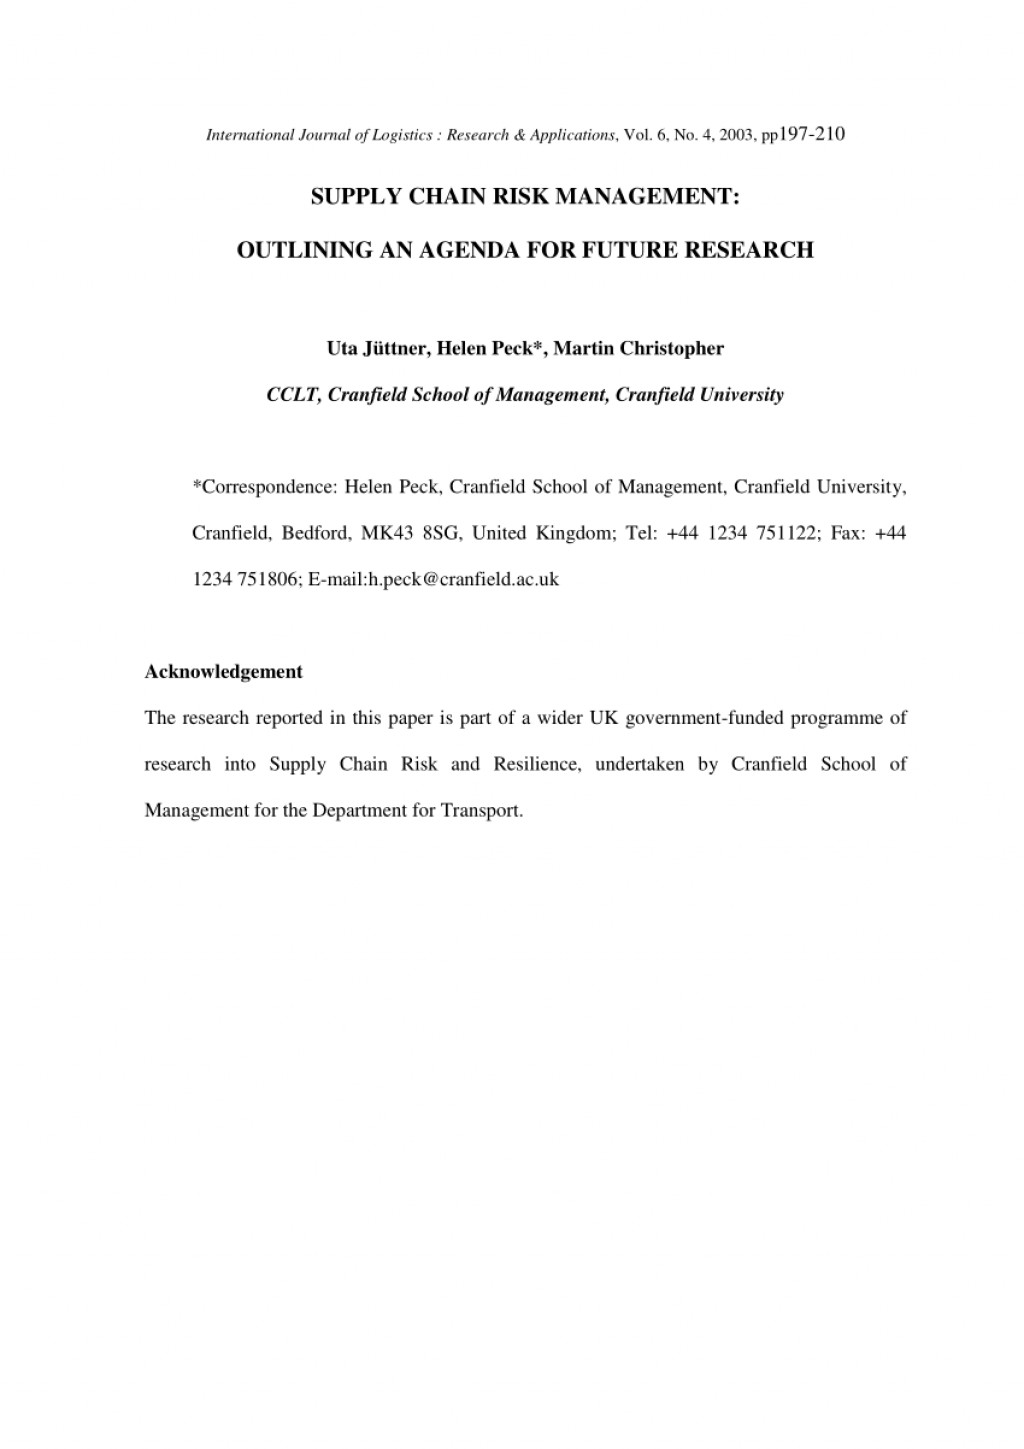 005 Acknowledgement Example For Research Paper Rare Pdf Large